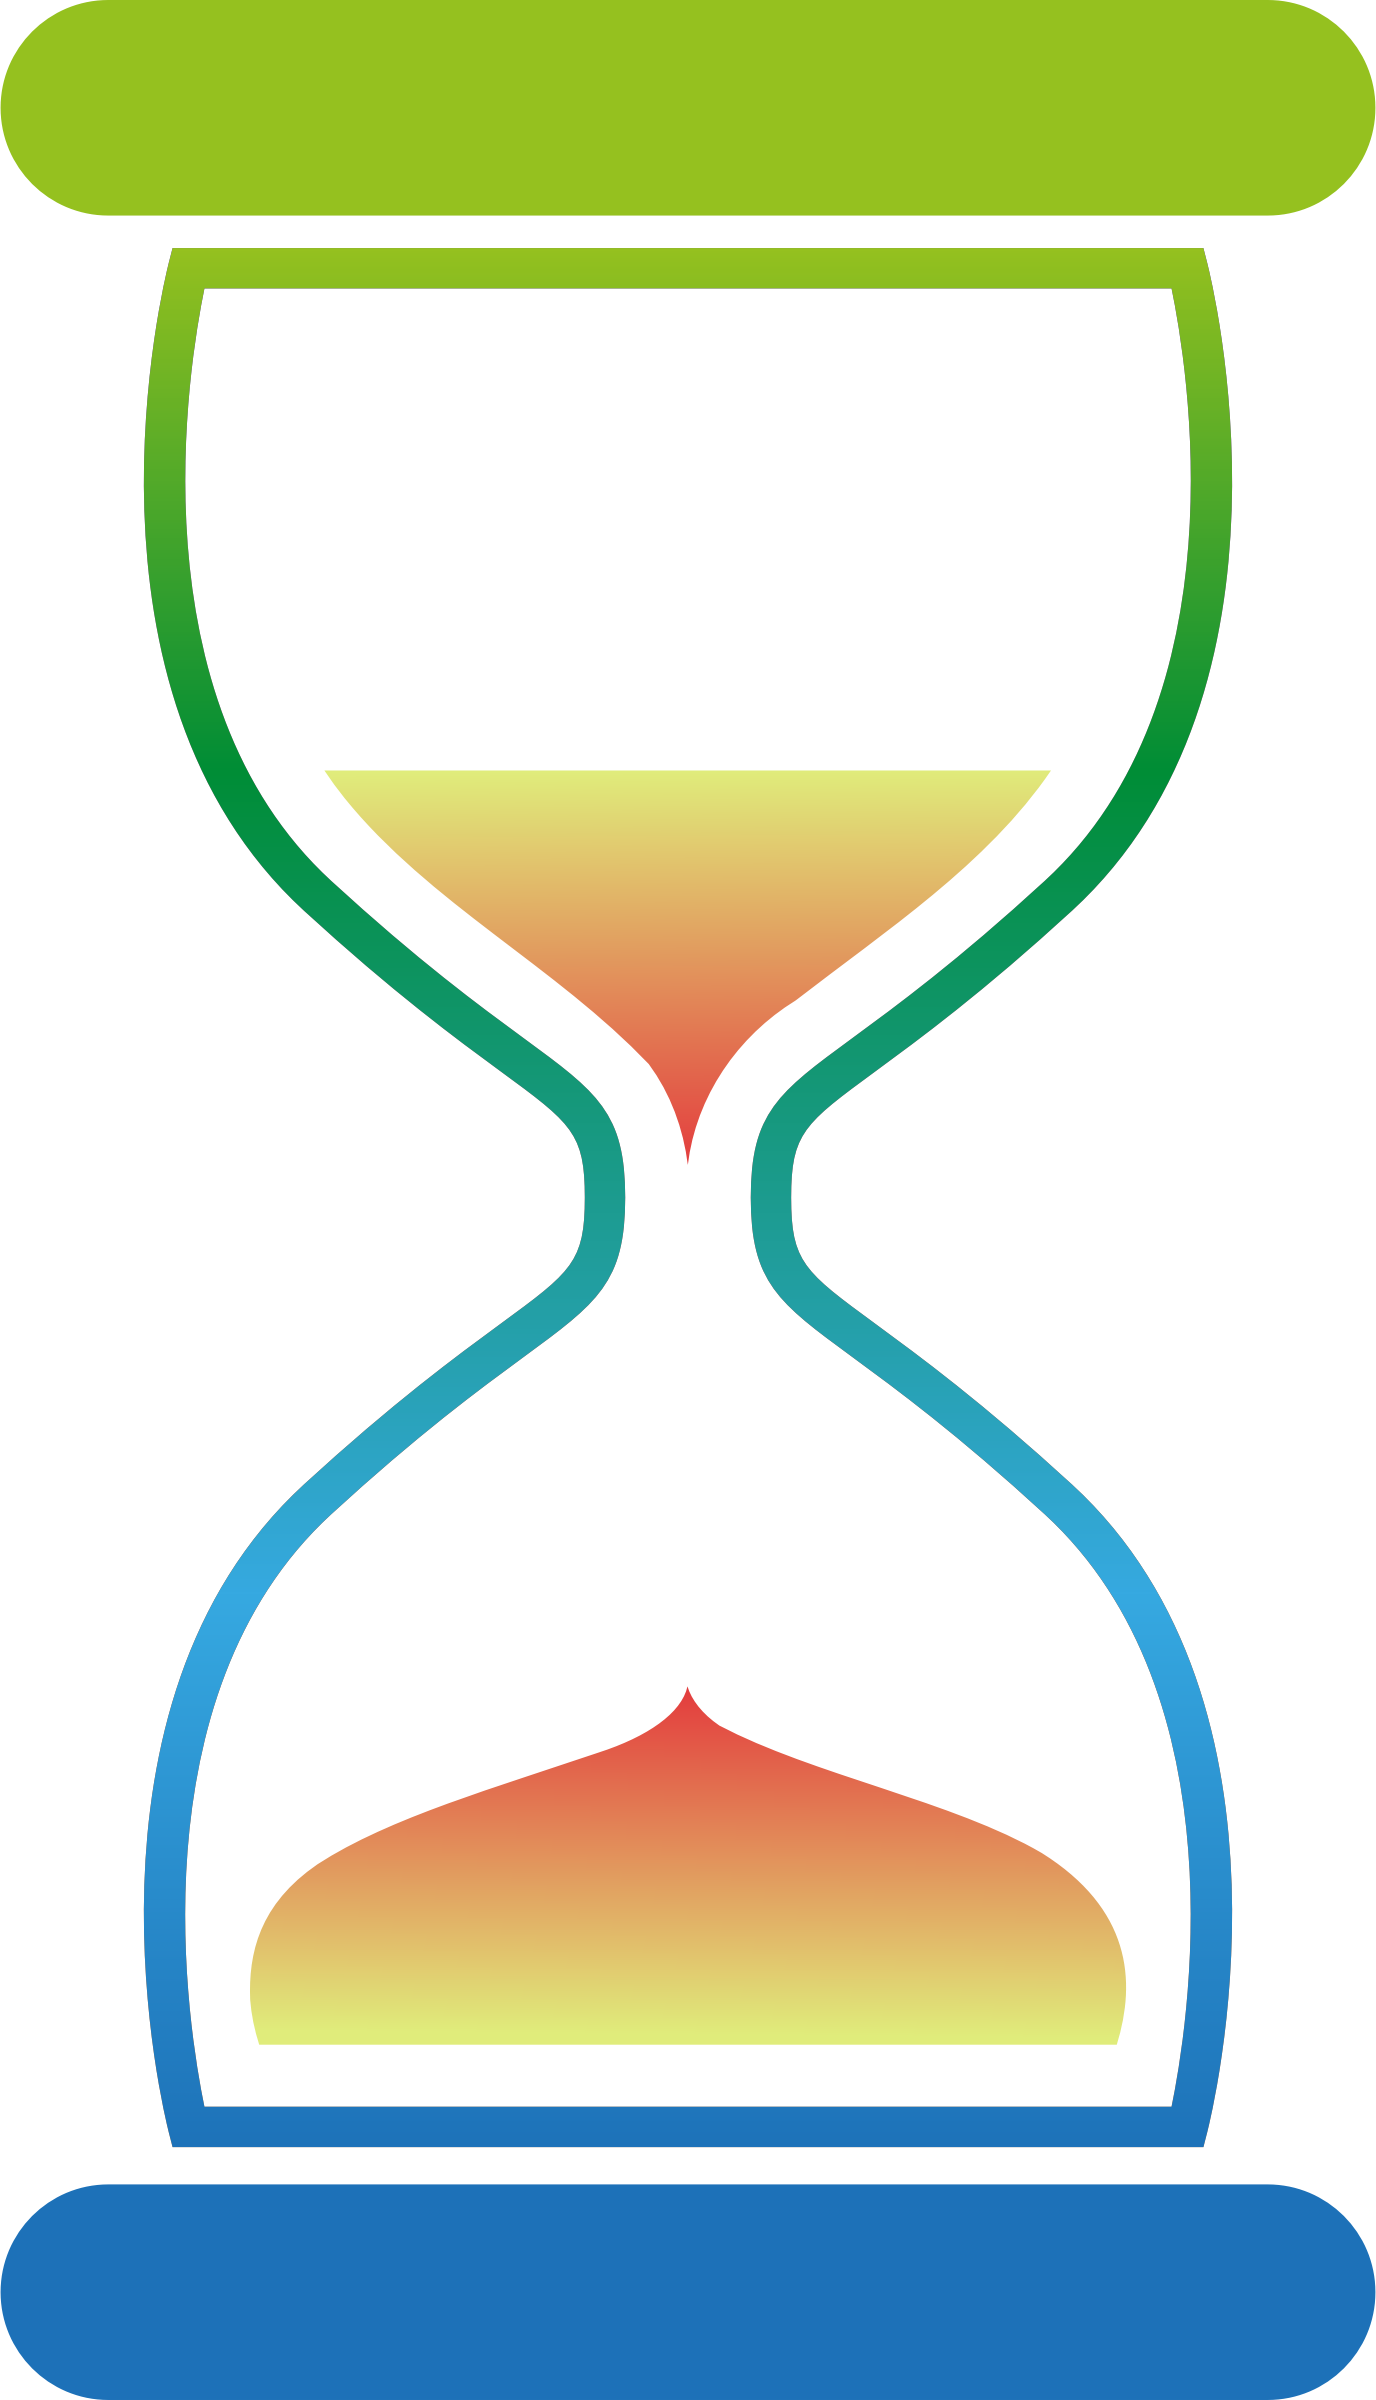 Colourful hourglass 2 by Firkin